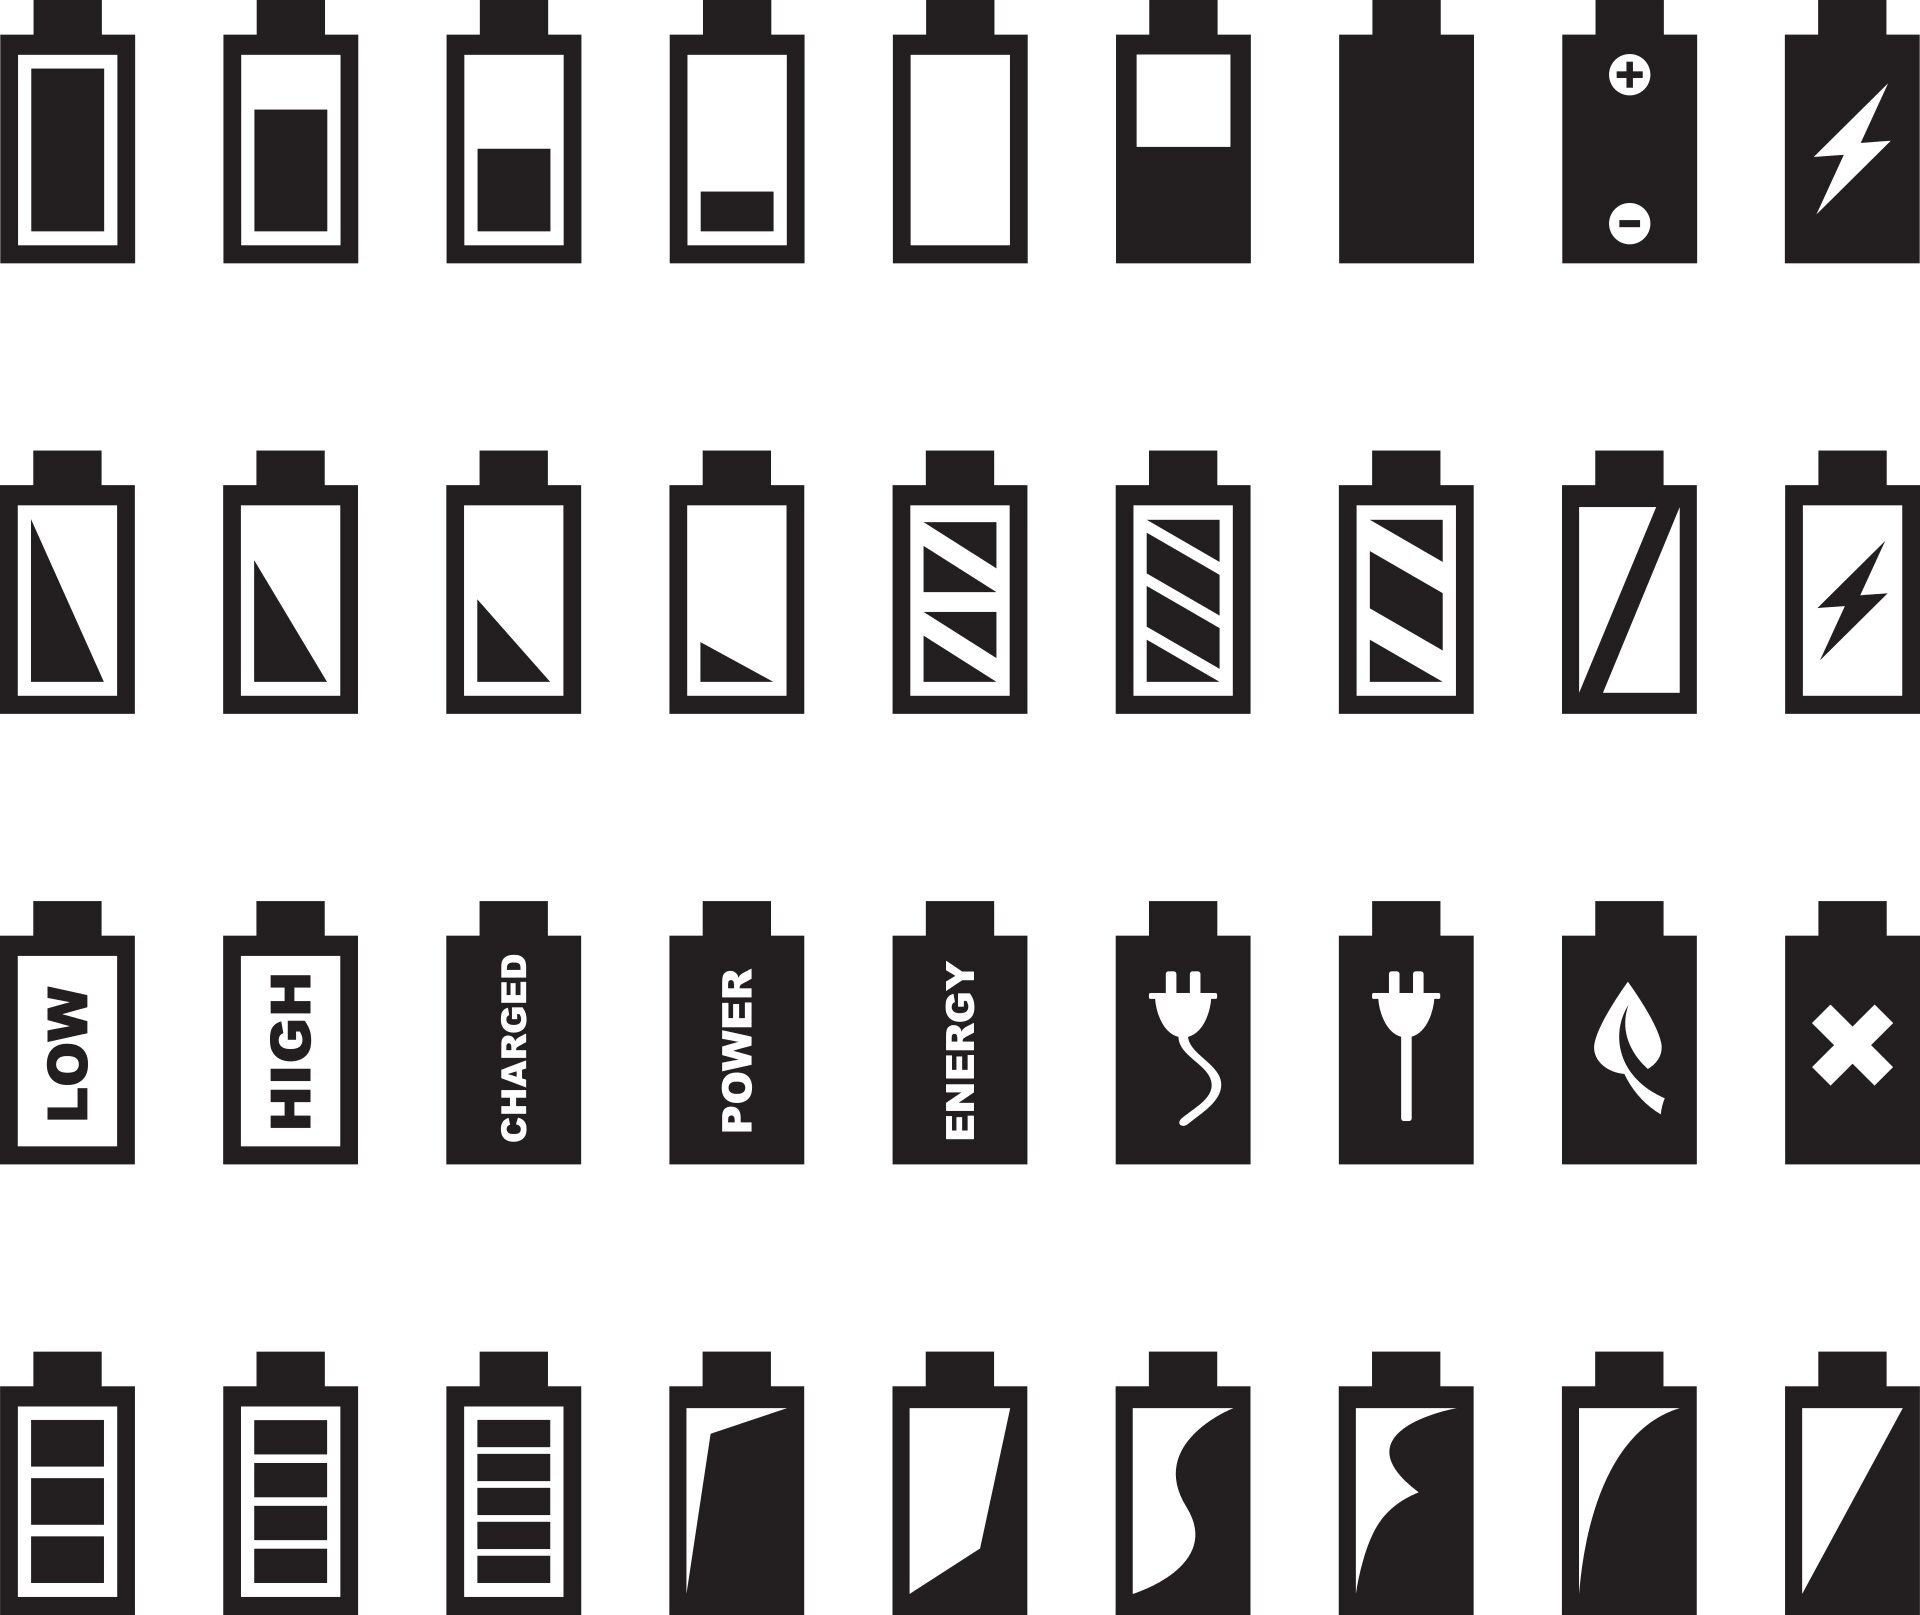 Battery icons shape perceptions of time and space and